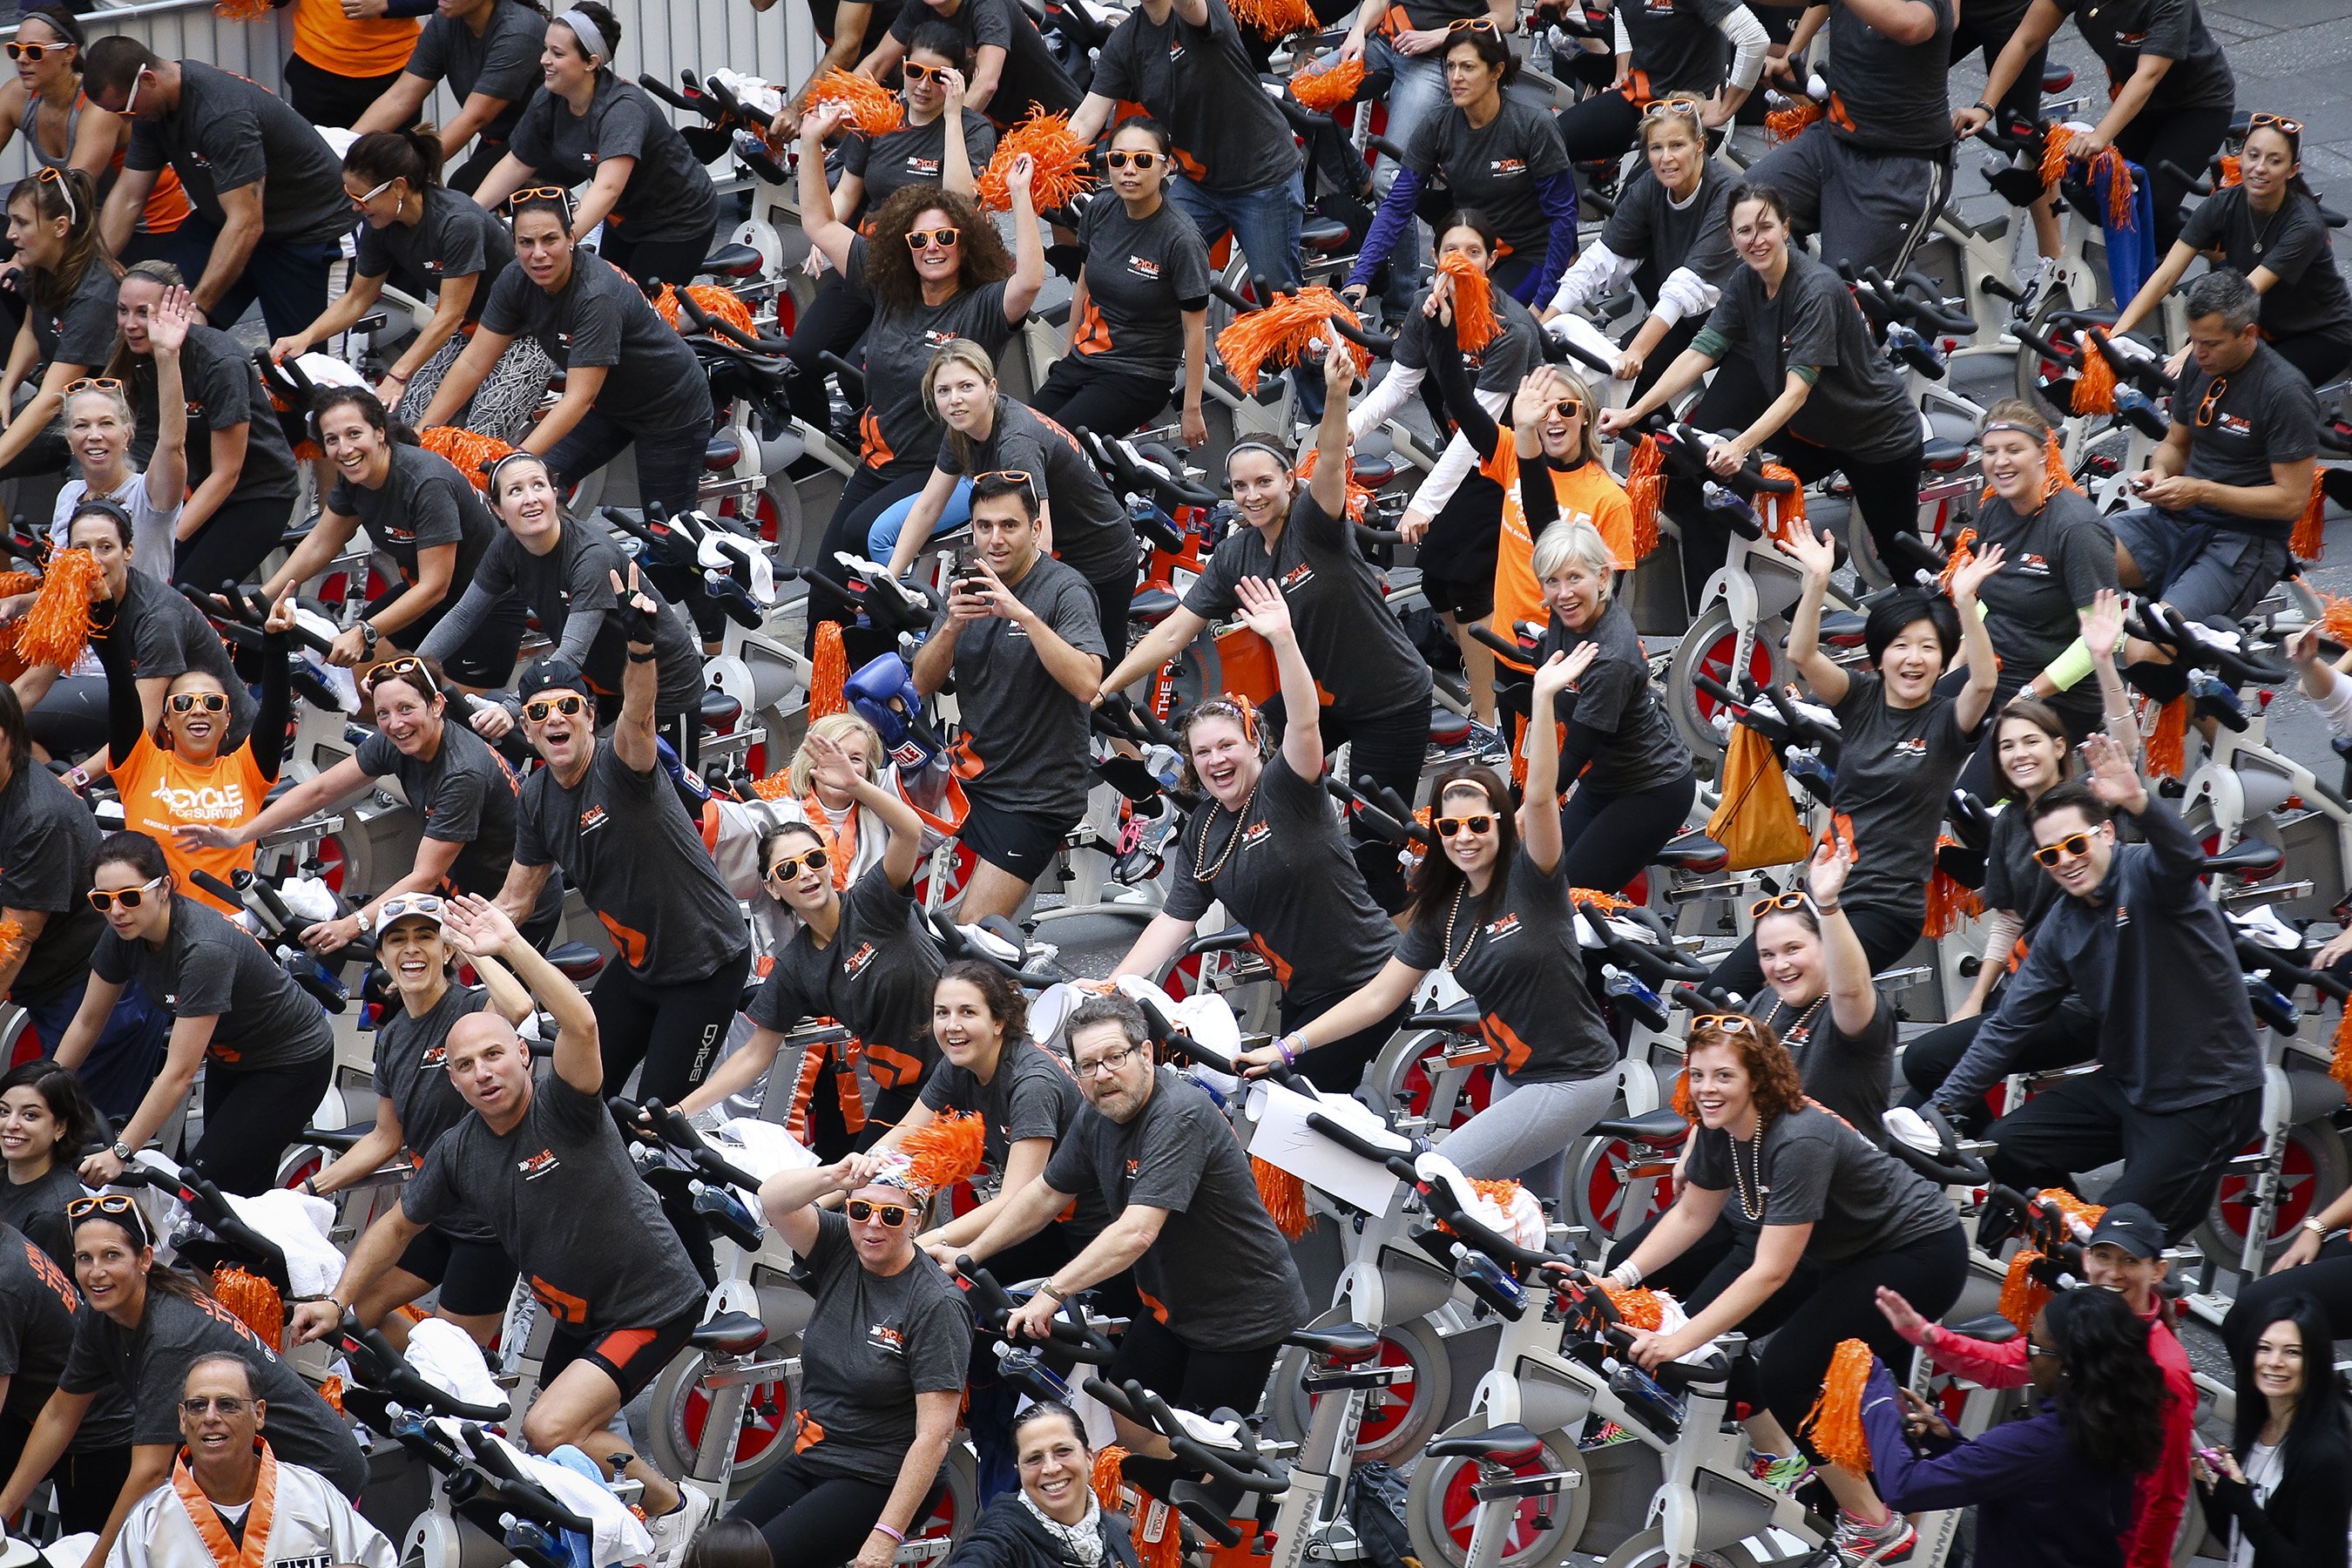 Participants wave during the Cycle for Survival kick-off event as Equinox instructors lead rides in Times Square, Friday, Sept. 19, 2014, in New York. Cycle for Survival is the national movement to beat rare cancers. 100 percent of funds raised go directly to rare cancer research led by Memorial Sloan Kettering Cancer Center. More than $50 million has been raised since its founding in 2007. (John Minchillo/AP Images for Cycle for Survival)